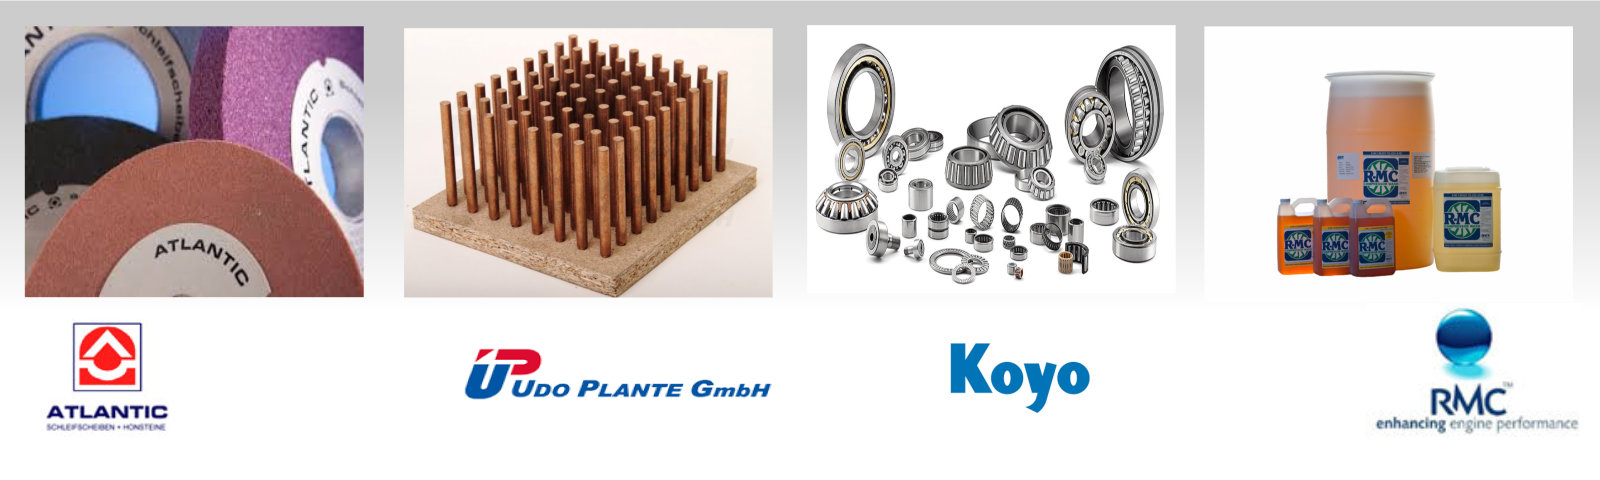 Industrial Supplies (Grinding Wheels, Electrodes, Bearings)